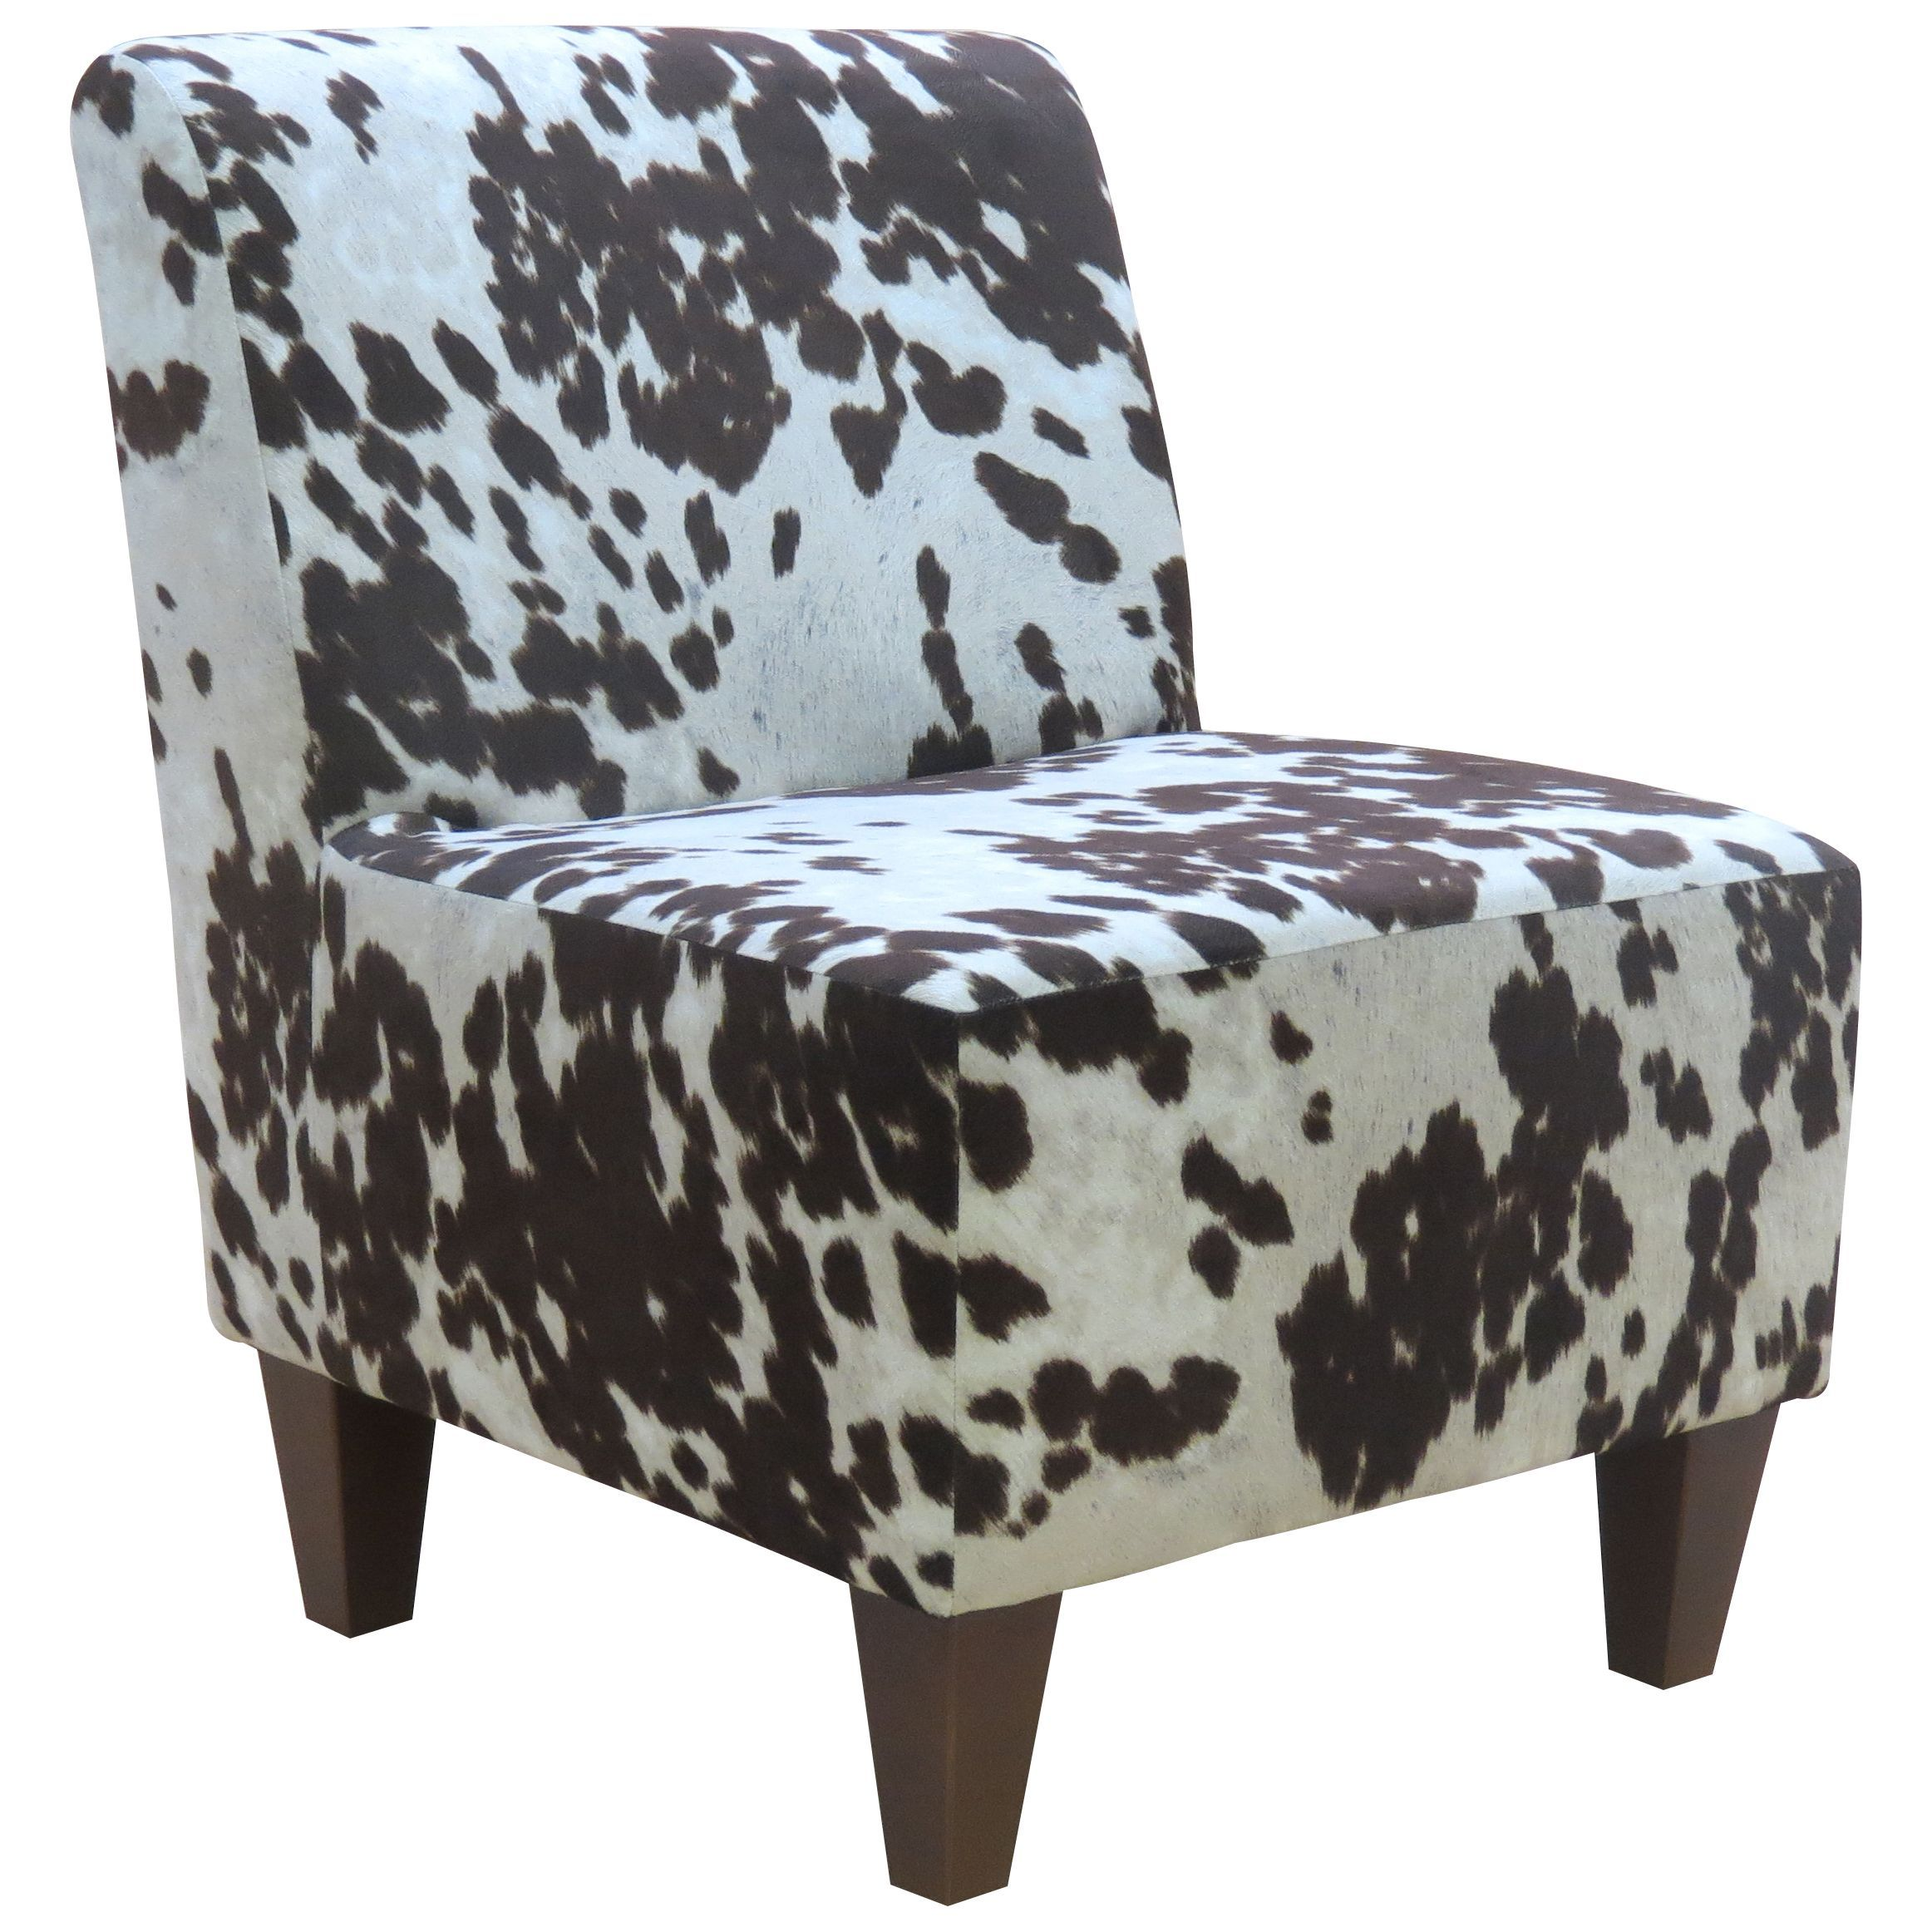 Miraculous Beumont Cowhide Armless Accent Chair Cowide Brown Multi Alphanode Cool Chair Designs And Ideas Alphanodeonline